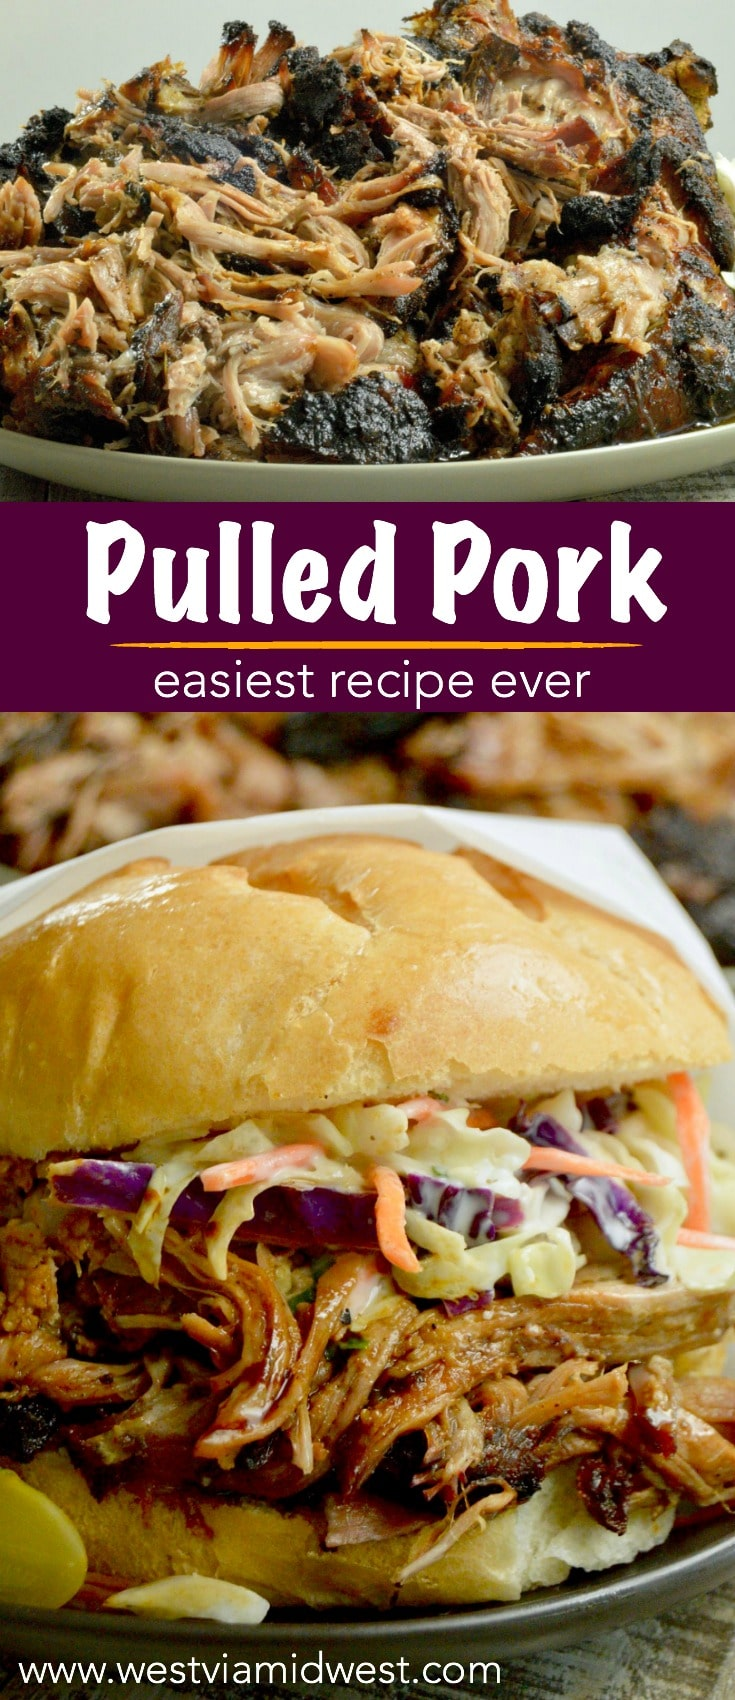 Pulled Pork, one pan all day cooking yields fork tender, pull apart meat that melts in your mouth.  Ideal comfort food for all fall entertaining. #pulledpork #onepanmeal